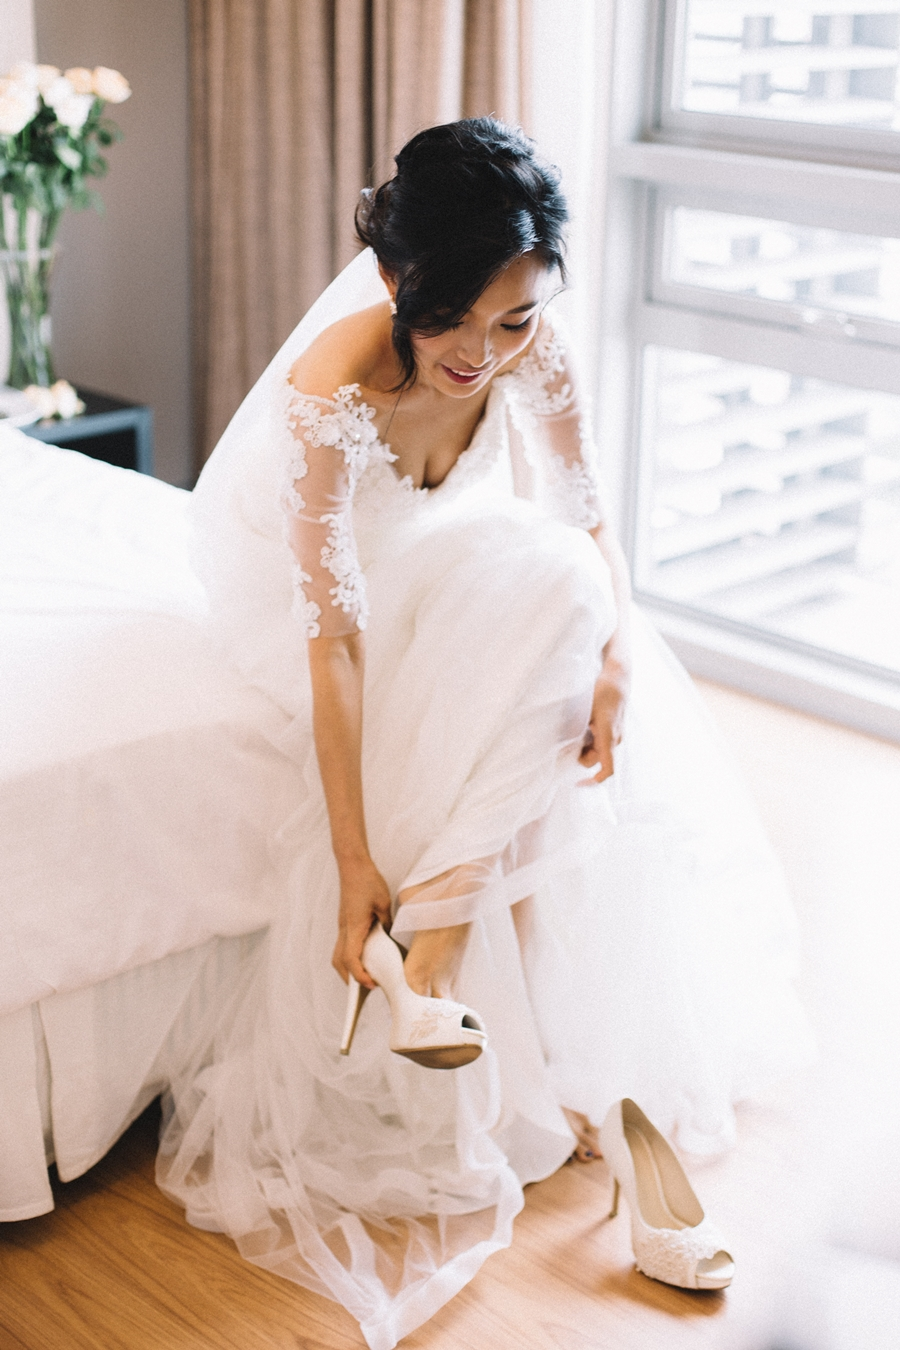 James_Jia Yee_Wedding (49).jpg